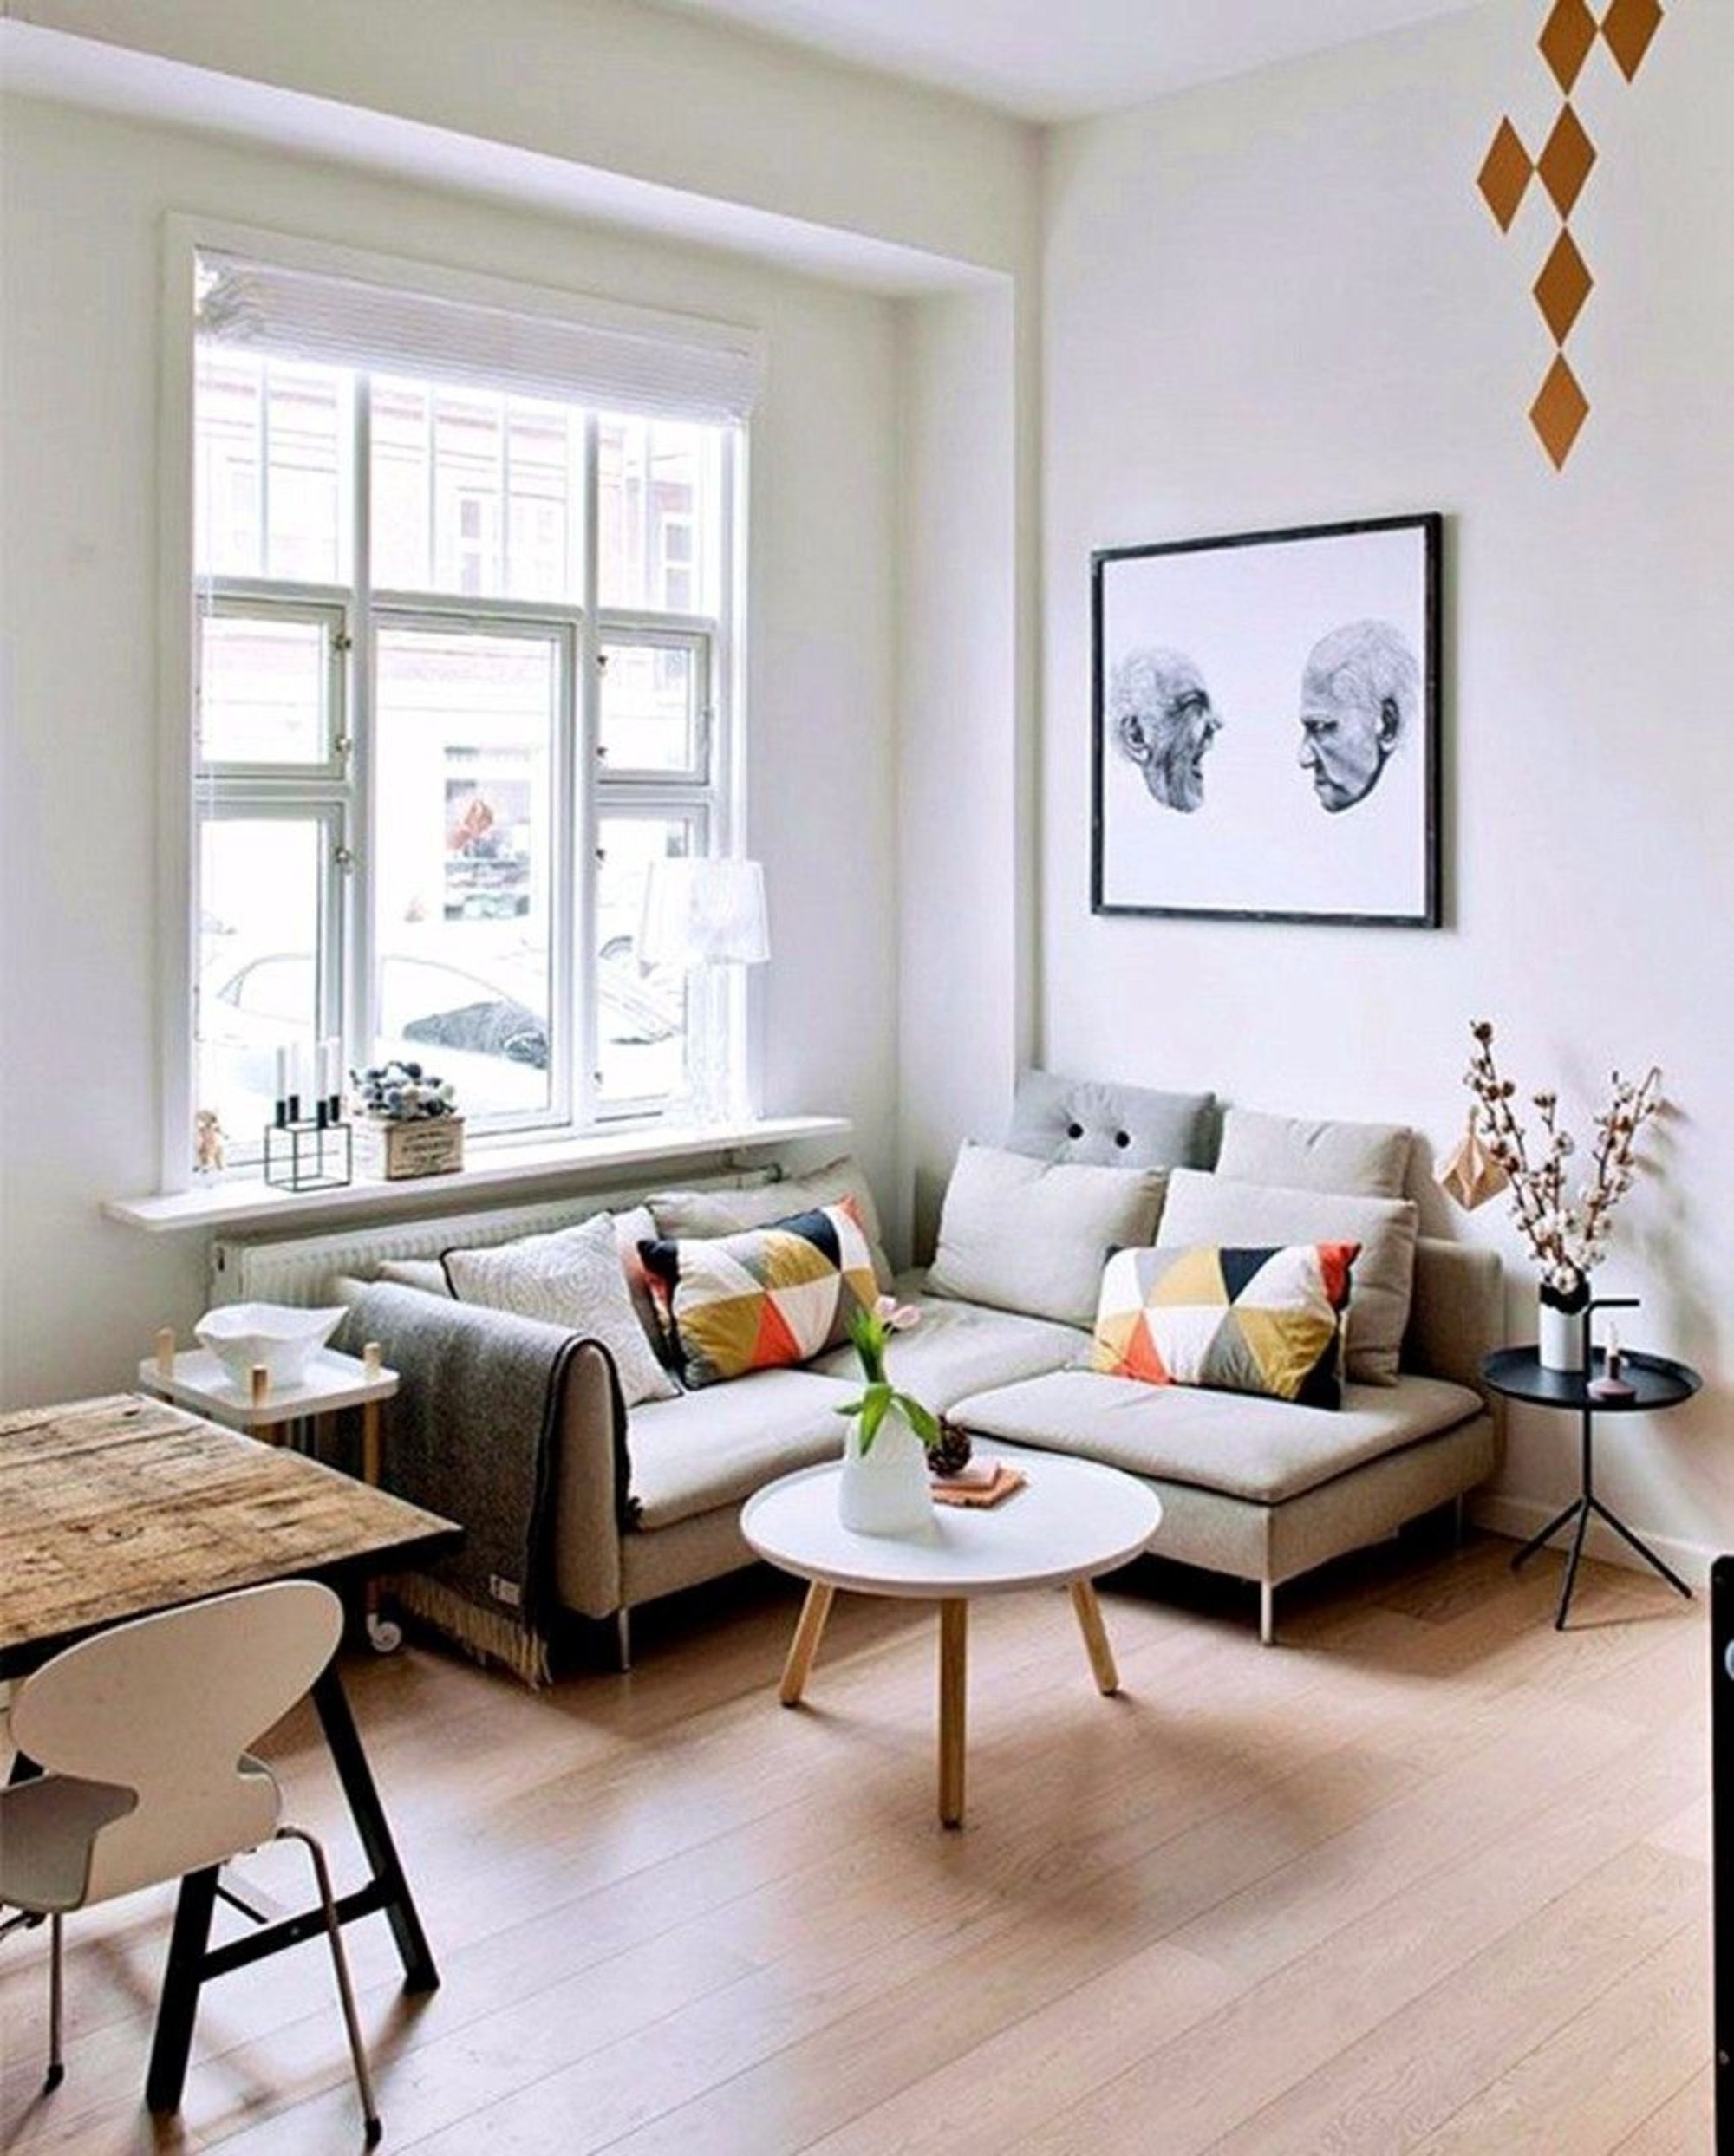 Comment agencer son salon dans un petit appartement ? Blog ...